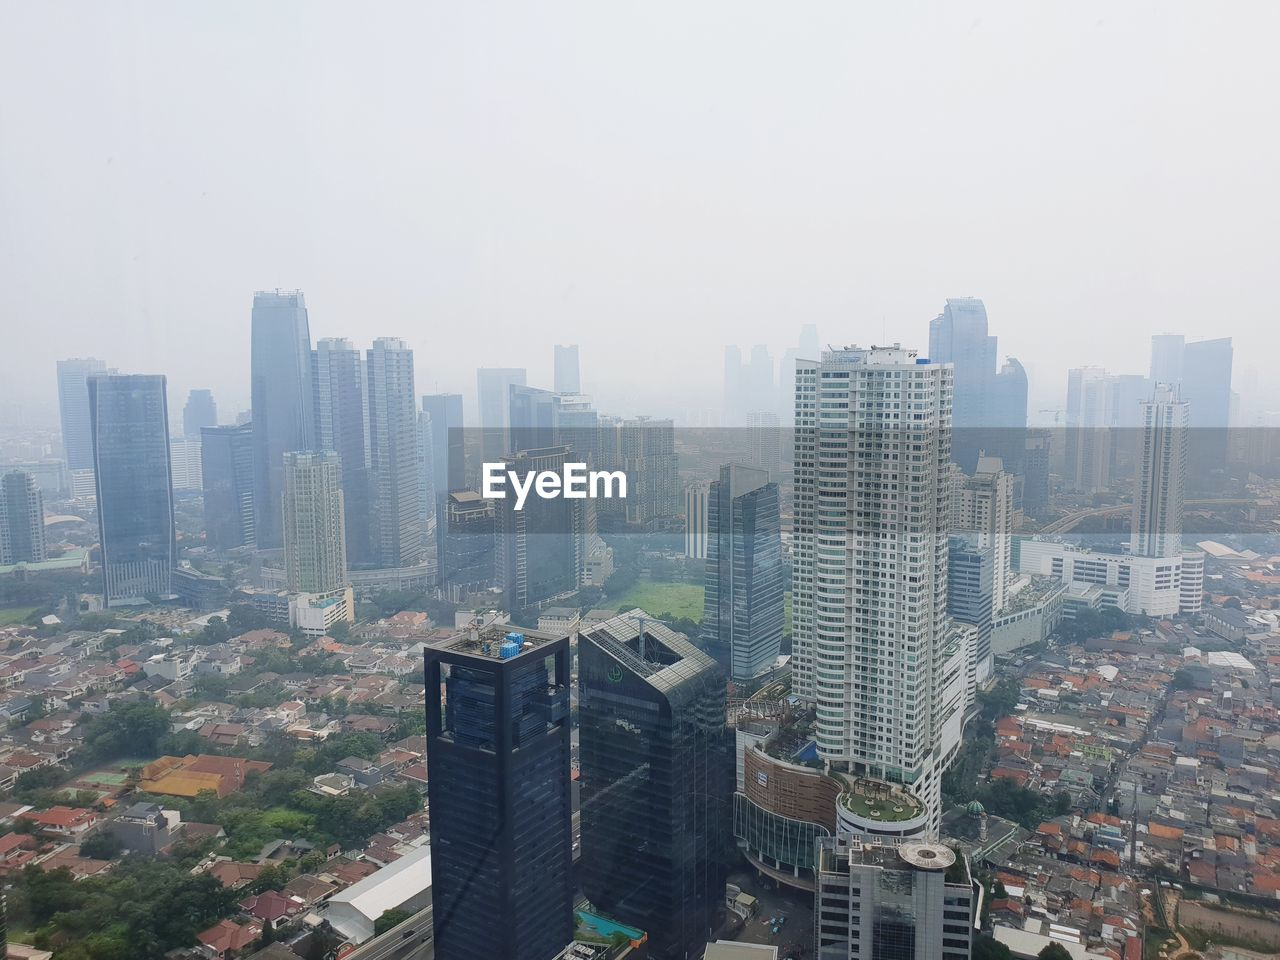 building exterior, built structure, architecture, city, building, cityscape, sky, residential district, crowd, office building exterior, skyscraper, nature, fog, crowded, tall - high, day, landscape, outdoors, high angle view, modern, financial district, settlement